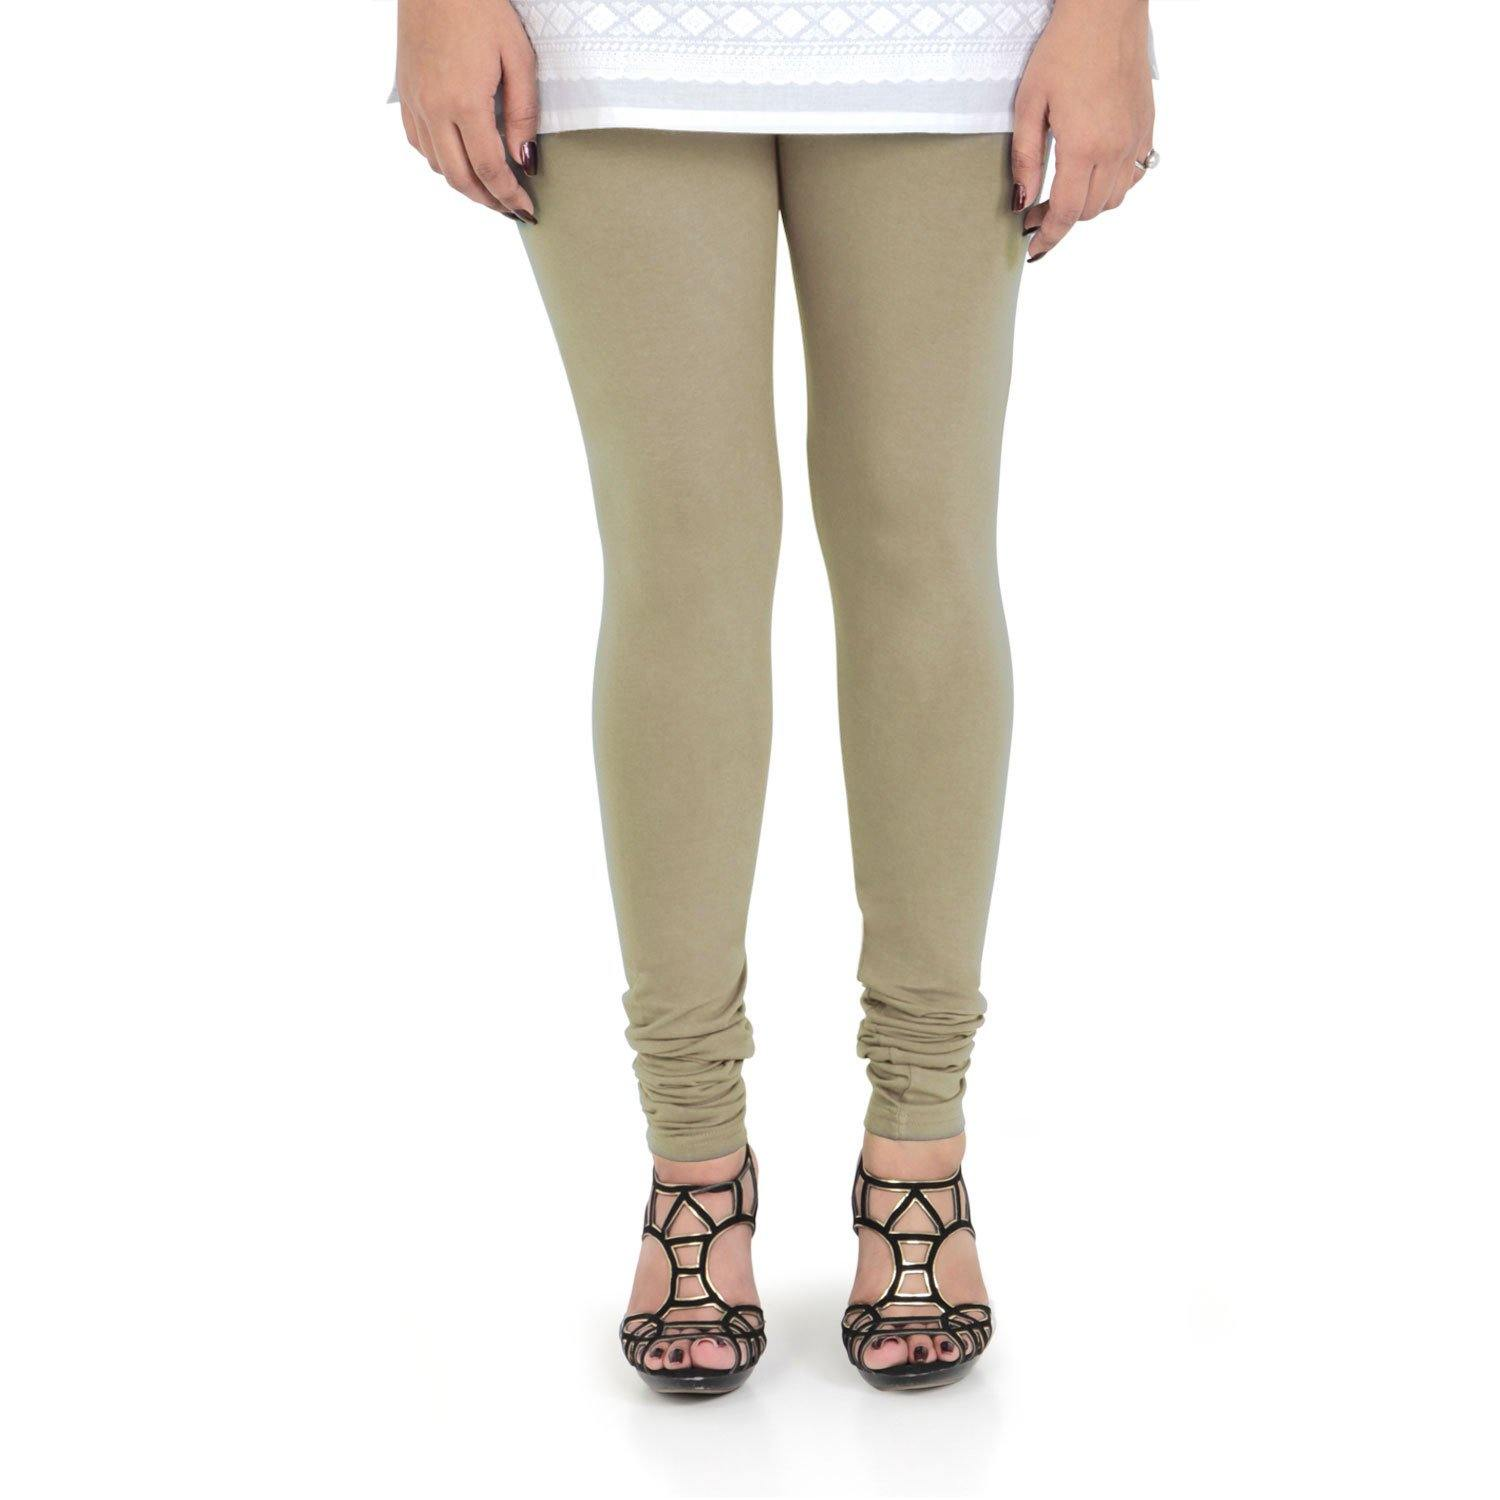 Vami Women's Cotton Stretchable Churidar Legging - Natural Tan